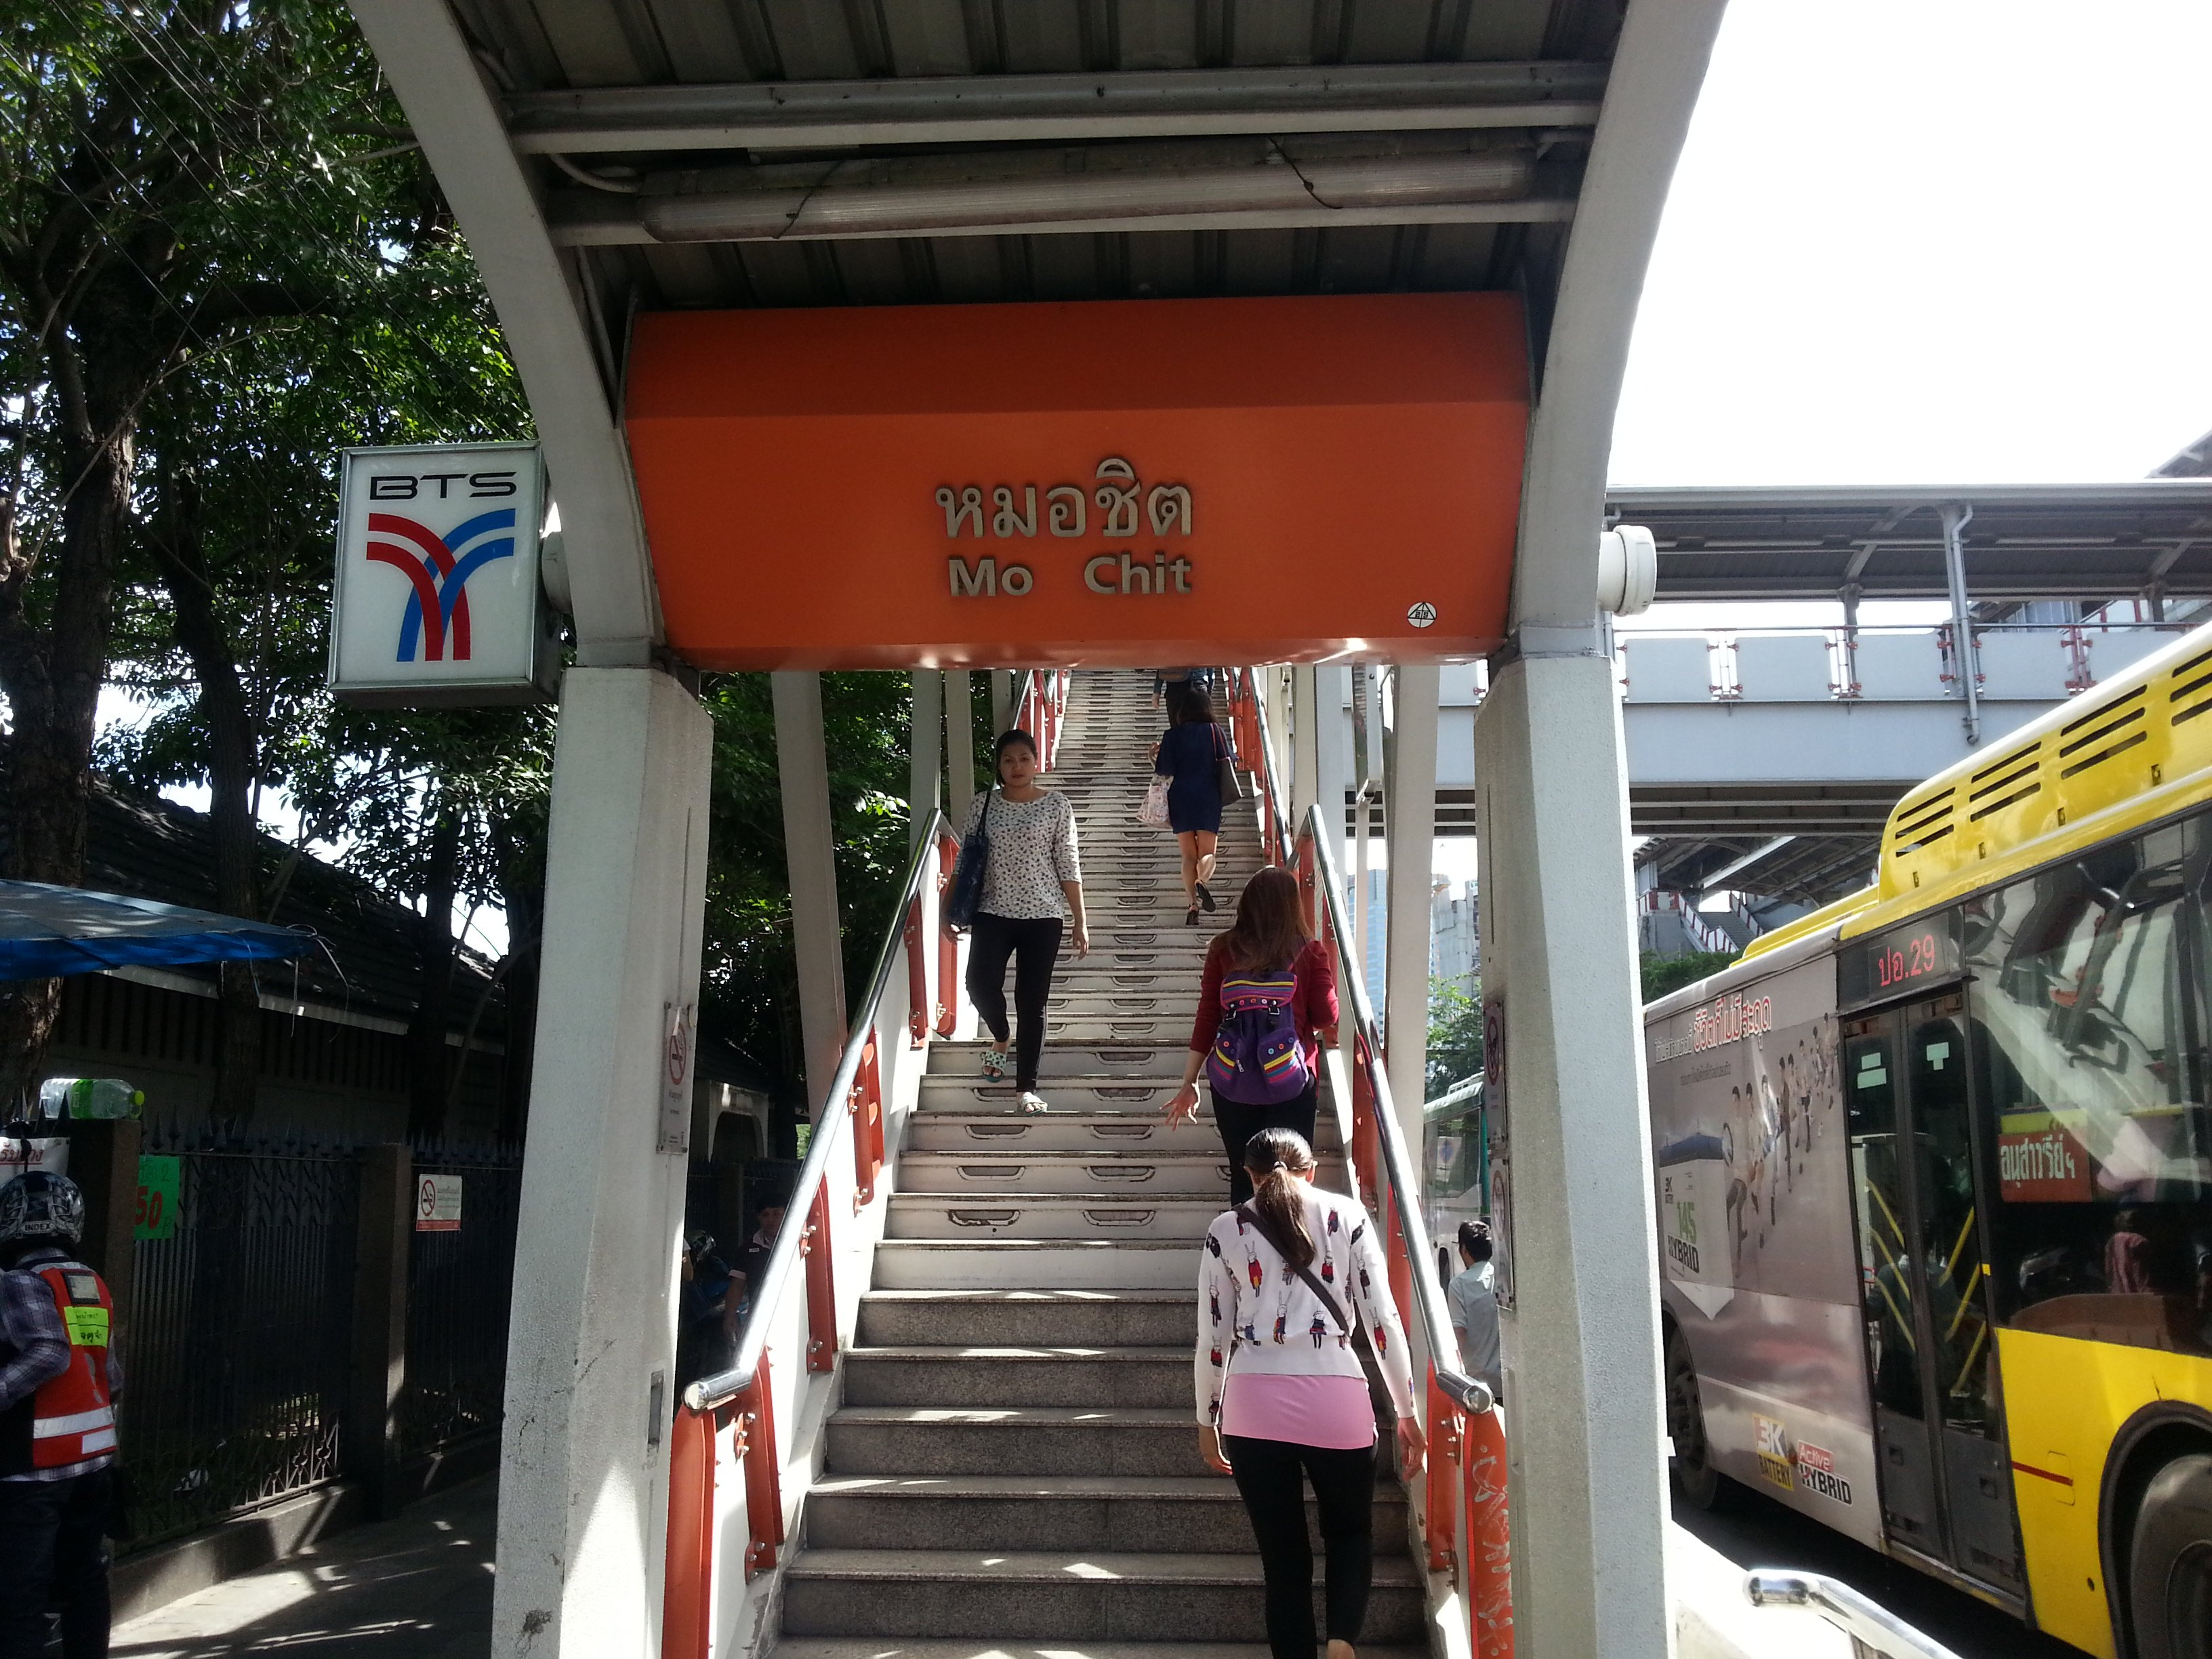 Mo Chit BTS station in Bangkok